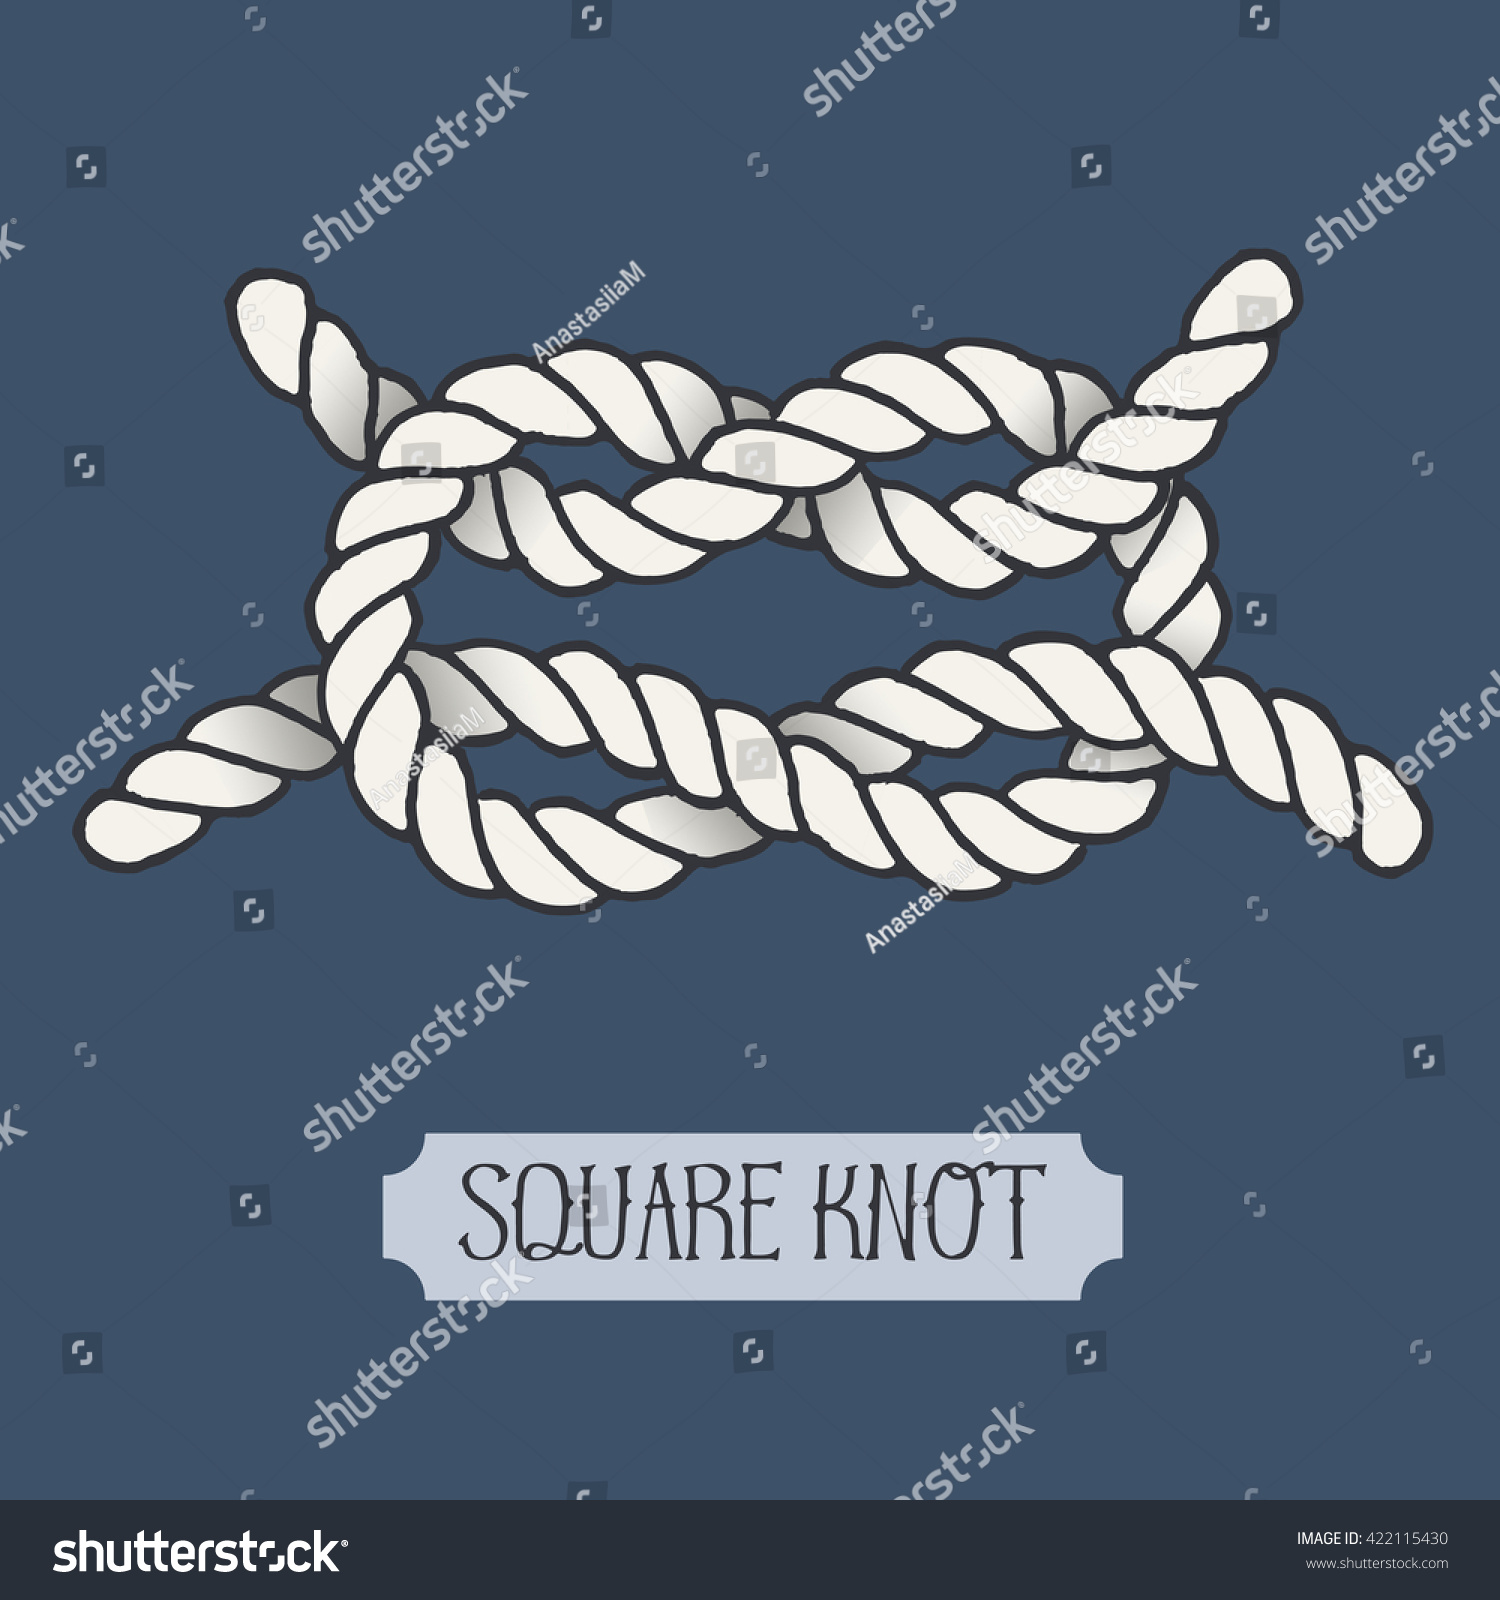 Single Illustration Nautical Square Knot Marine Stock Vector Bowline Diagram Clipart Best Of Rope Sign Artistic Hand Drawn Graphic Design